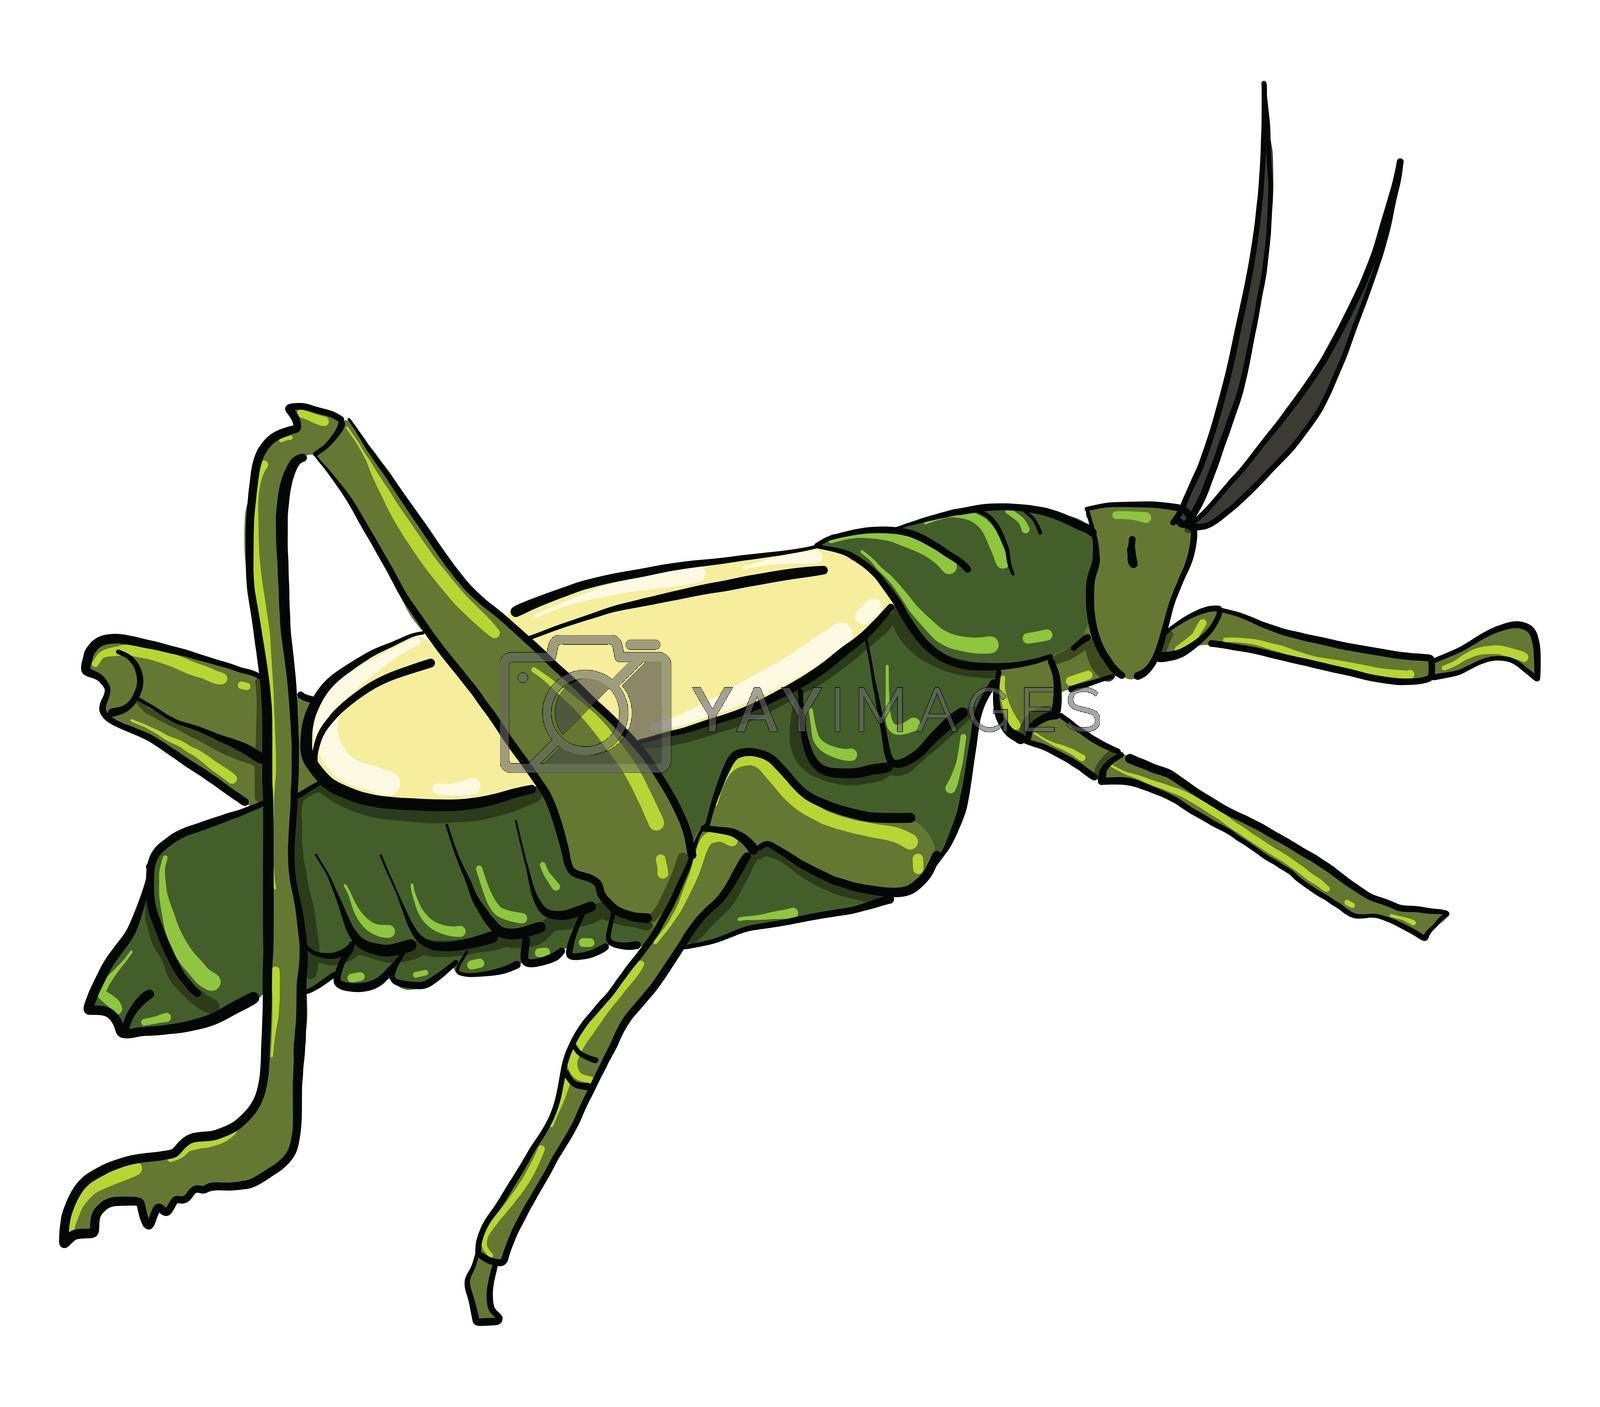 Grasshopper , illustration, vector on white background by Morphart